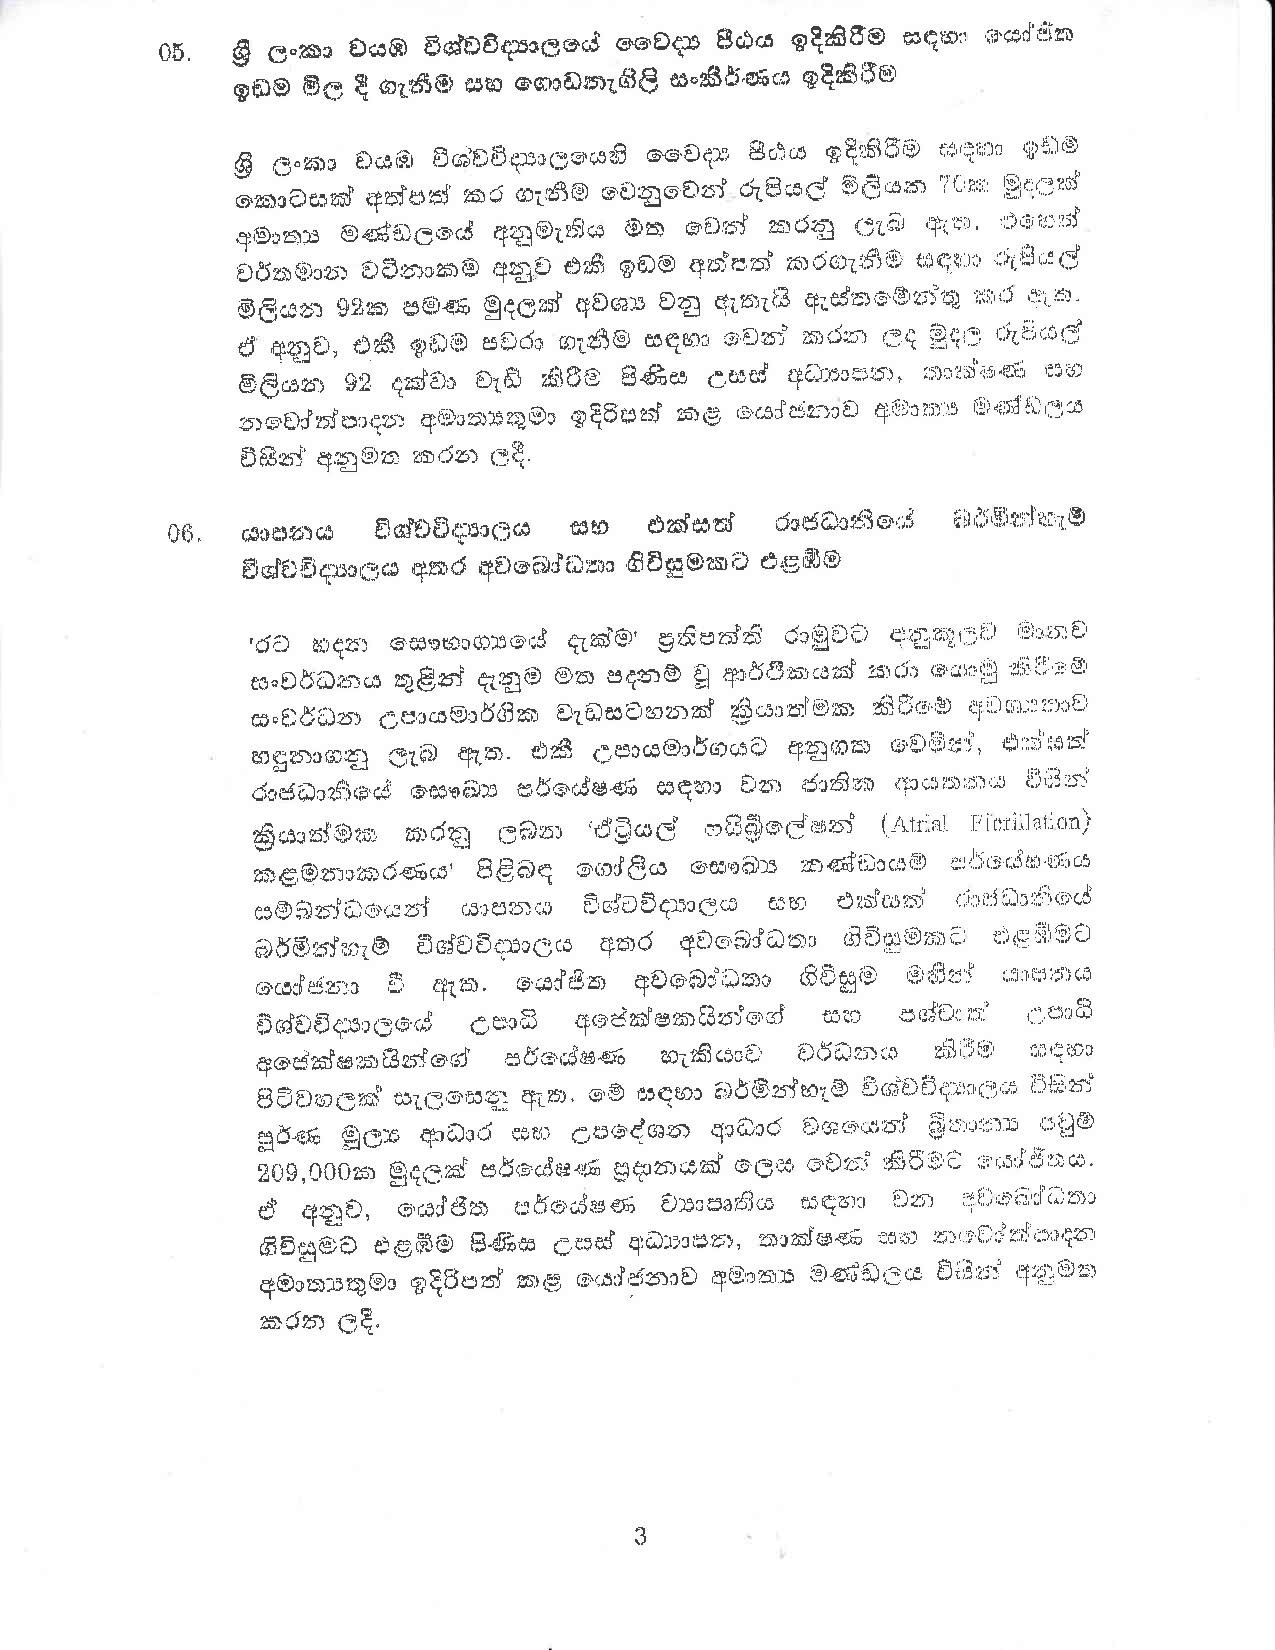 Cabinet Decision on sinhala 18.03.2020 page 003